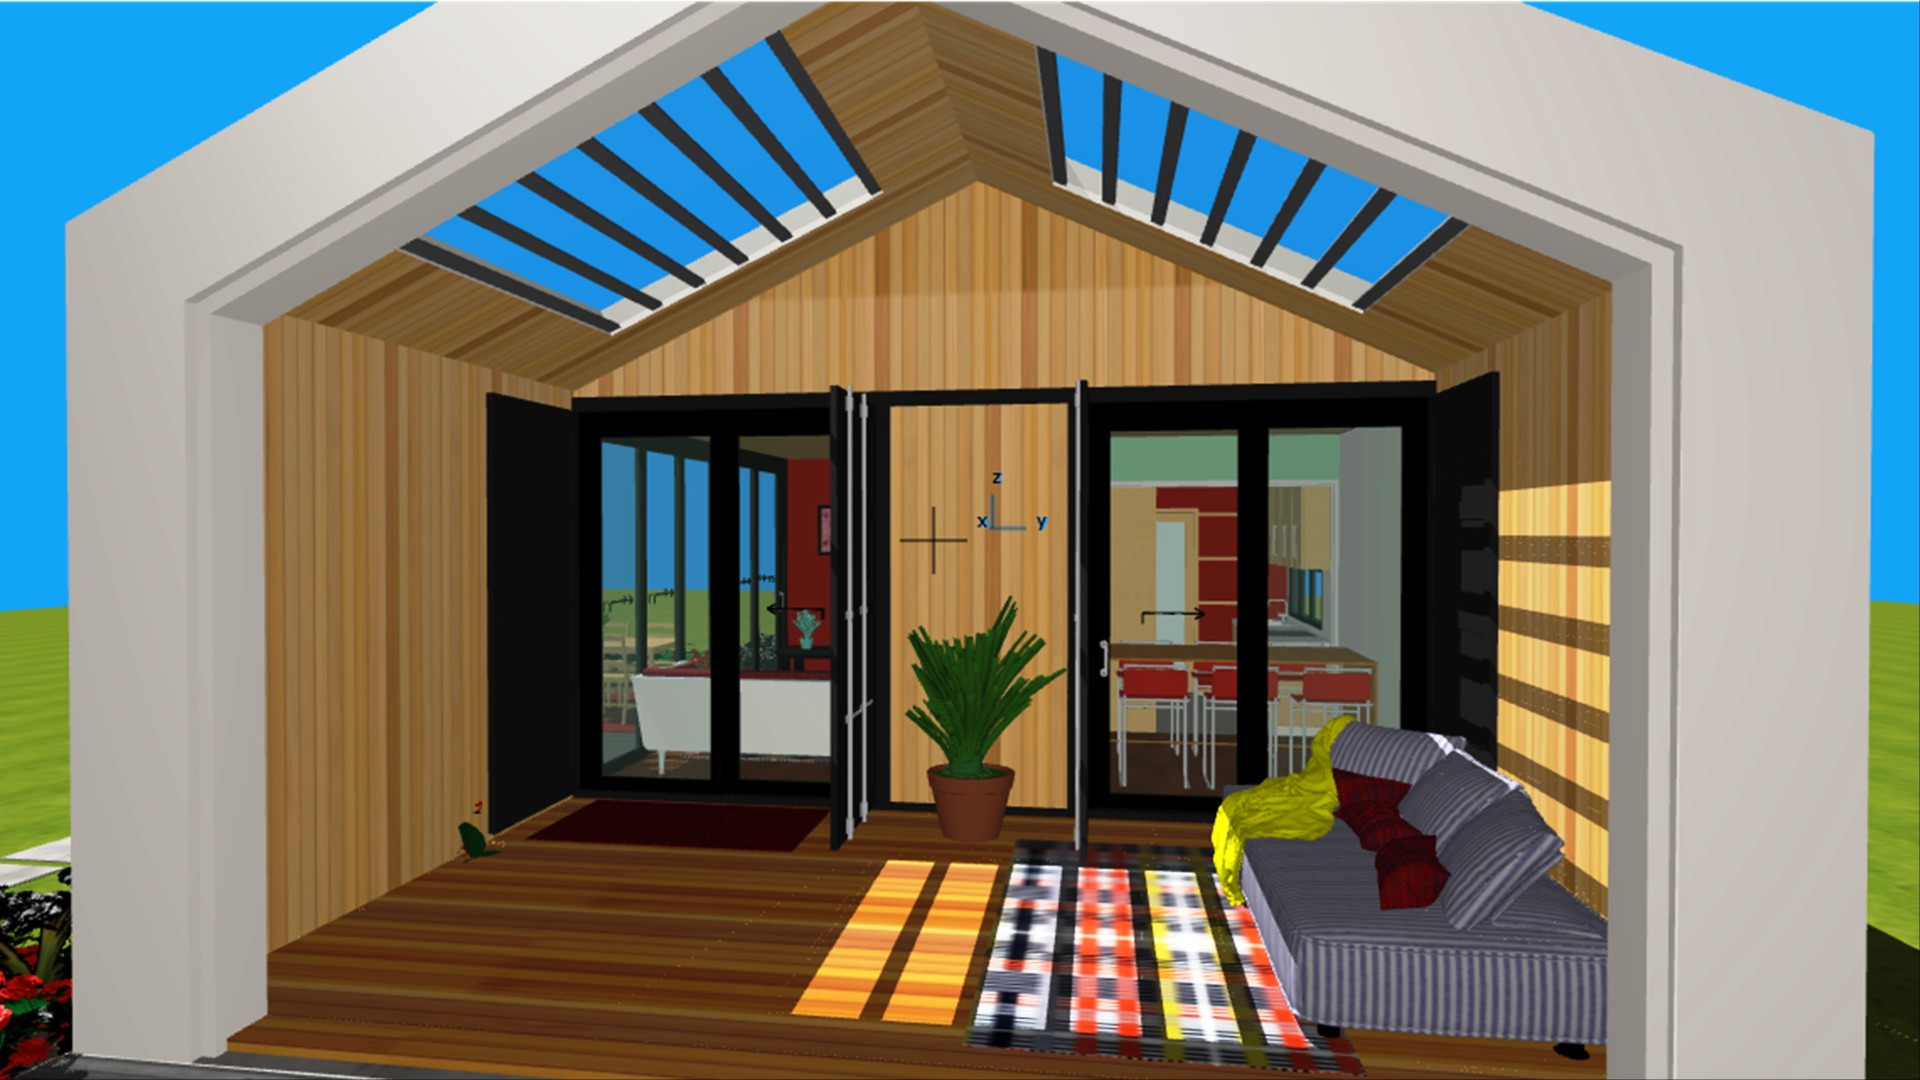 Do You Have Any Question Feel Free To Ask By Posting In The Comments Below For Additional Design Details And Interior Views